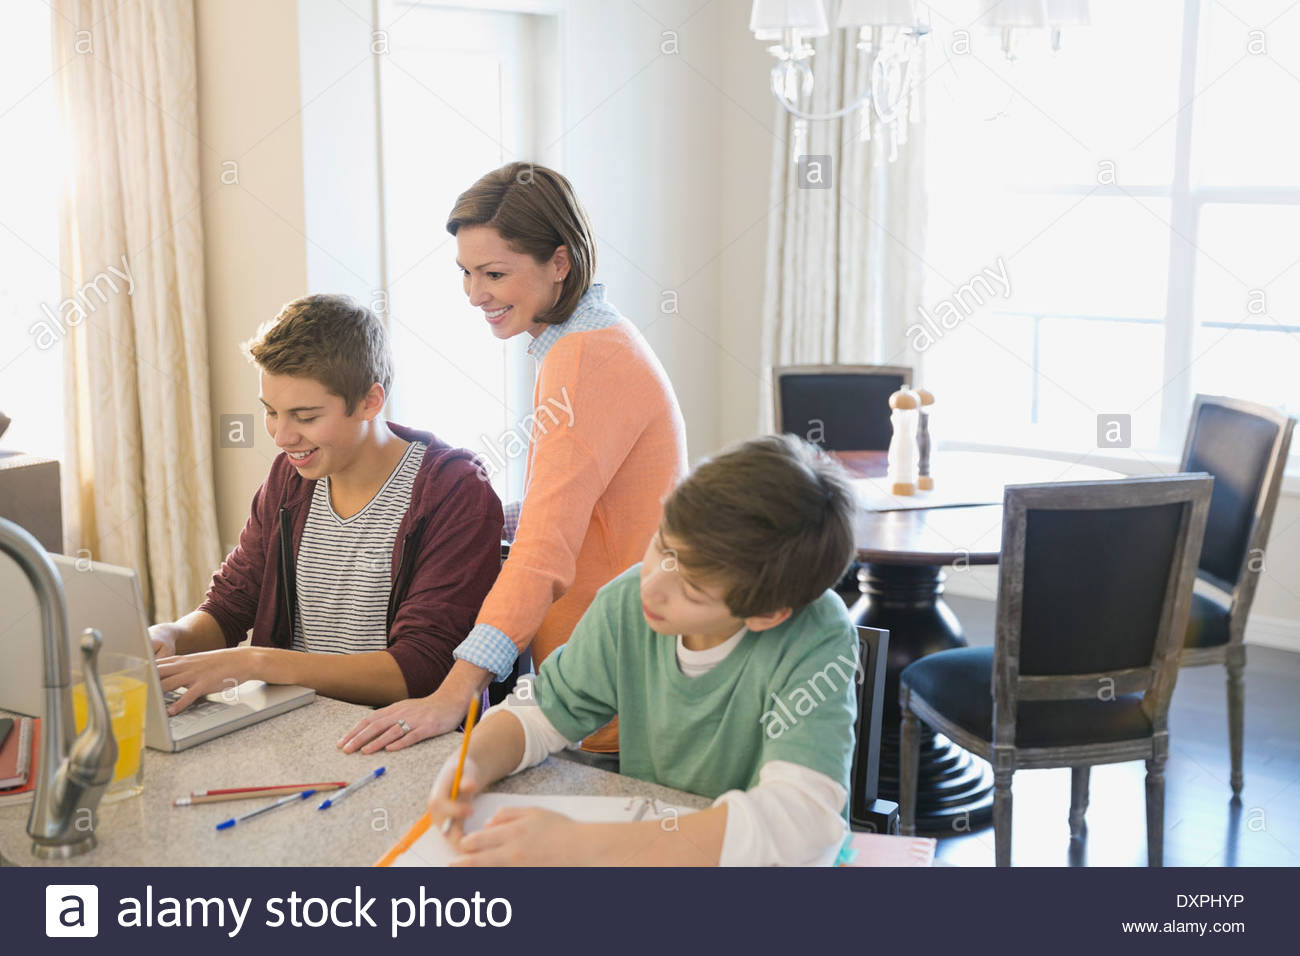 Mother assisting son with homework - Stock Image